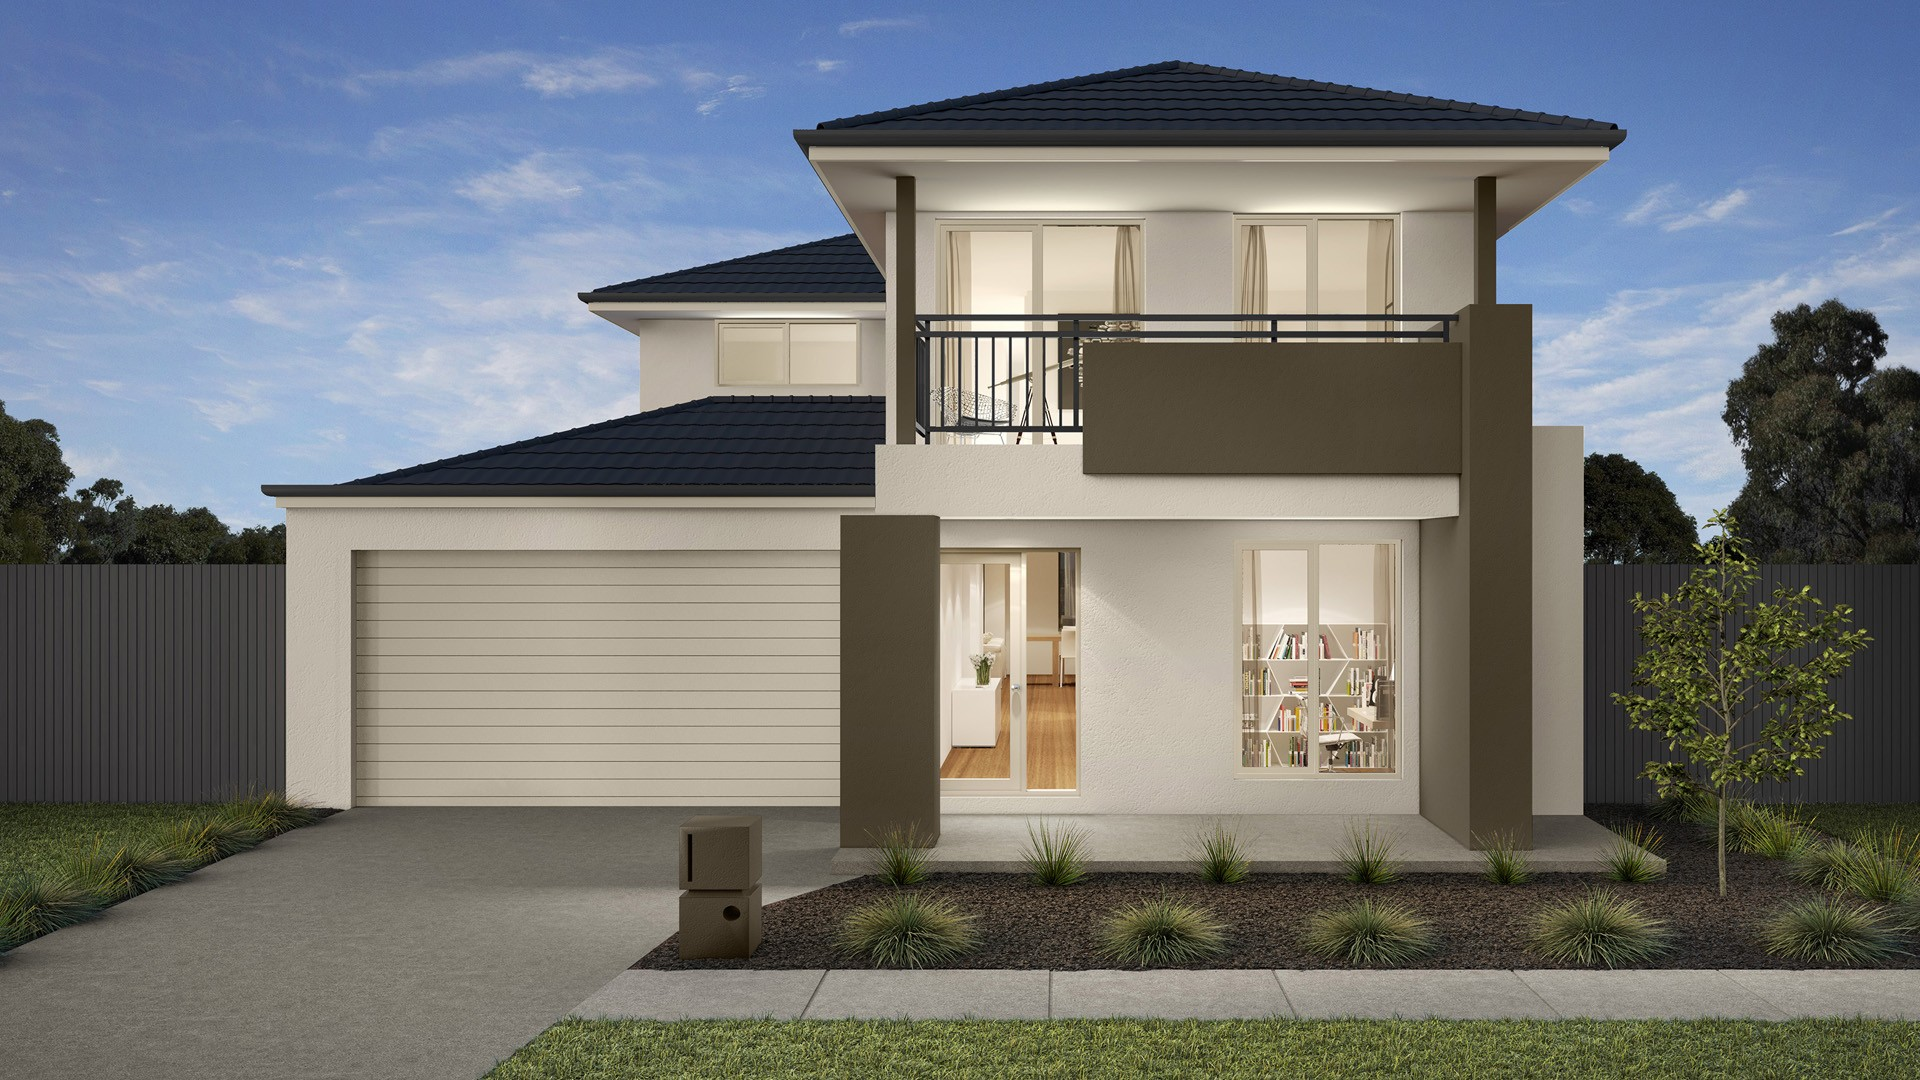 EASYLIVING JAMISON HEBEL MANCHESTER 12.5 Exterior Image 1